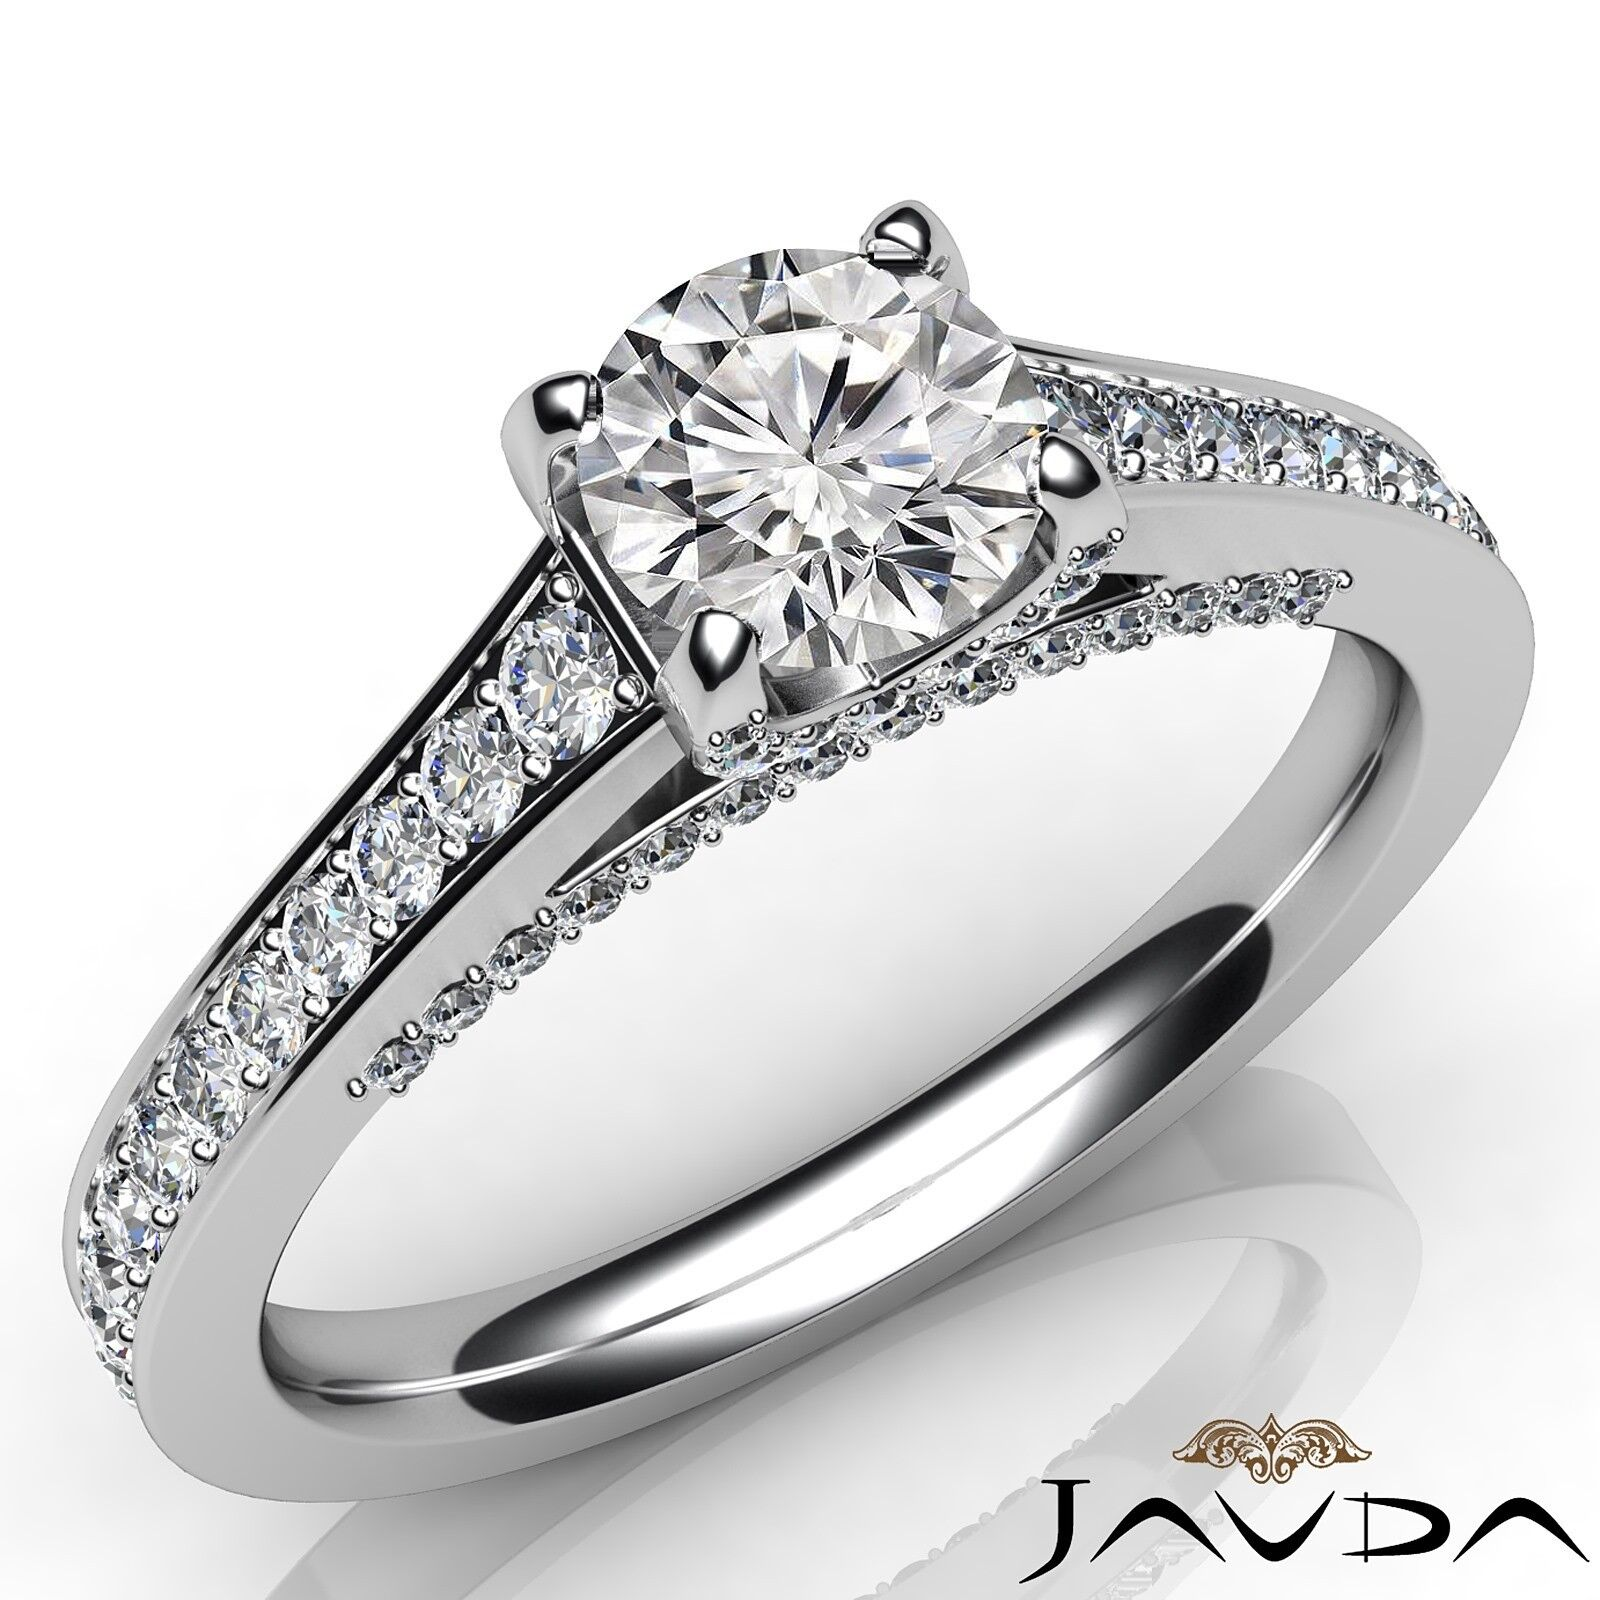 1.95ctw Classic 4 Prong Round Diamond Engagement Ring GIA F-VVS1 White Gold New